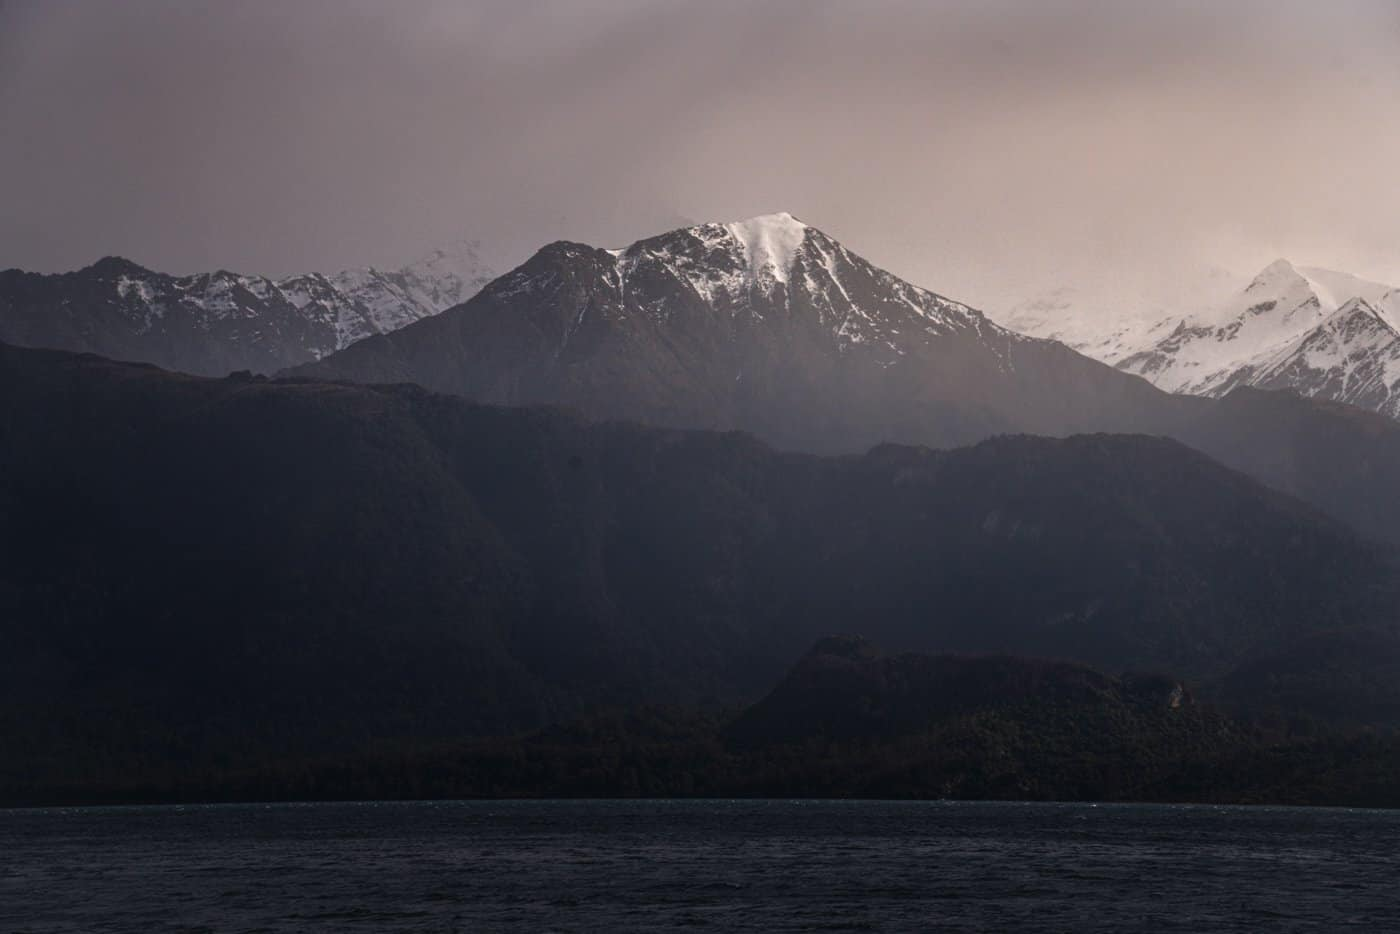 The mountain-scapes between Queenstown and Milford Sound are something to behold.